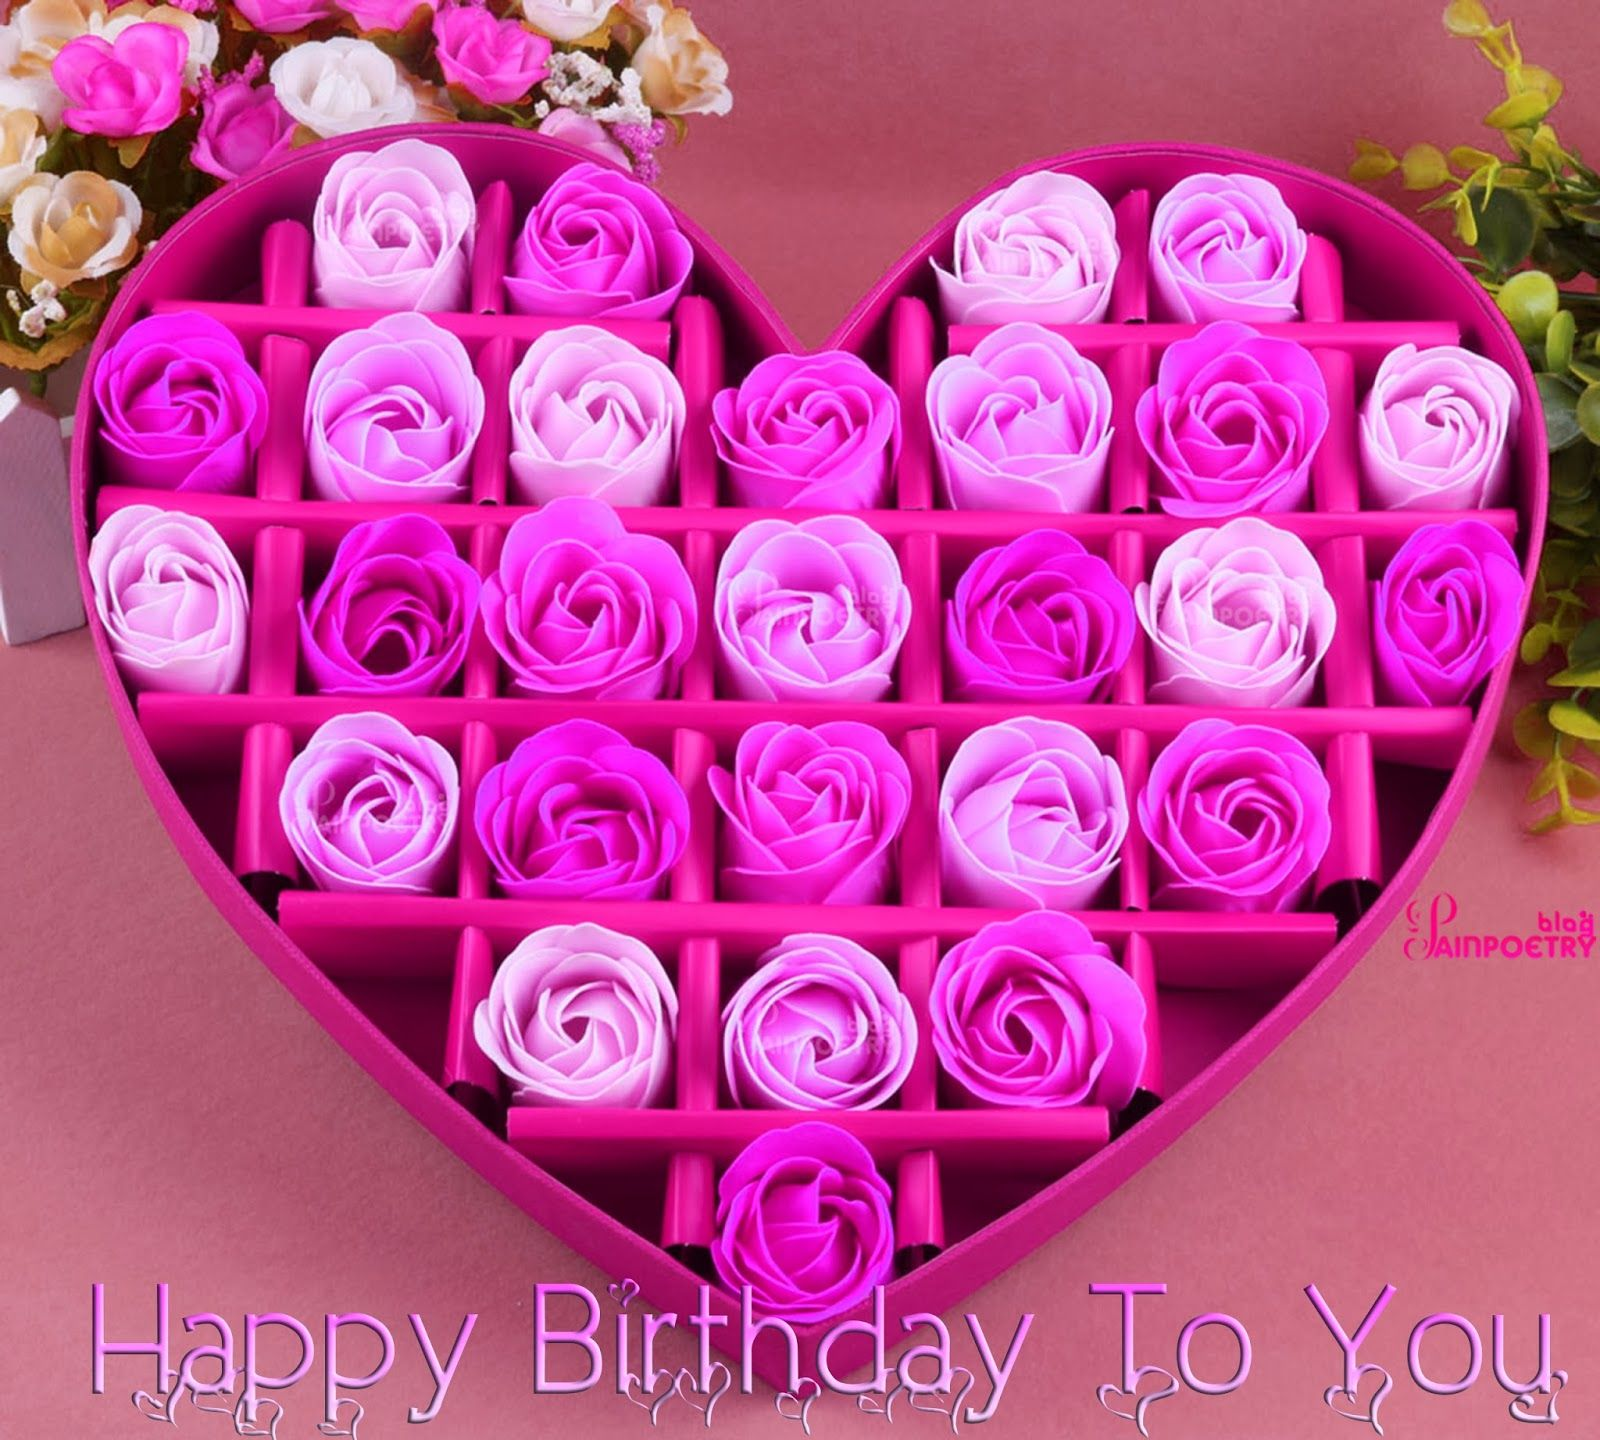 Happy birthday special gift 27 flower fit in a heart image hd wide happy birthday special gift 27 flower fit in negle Gallery